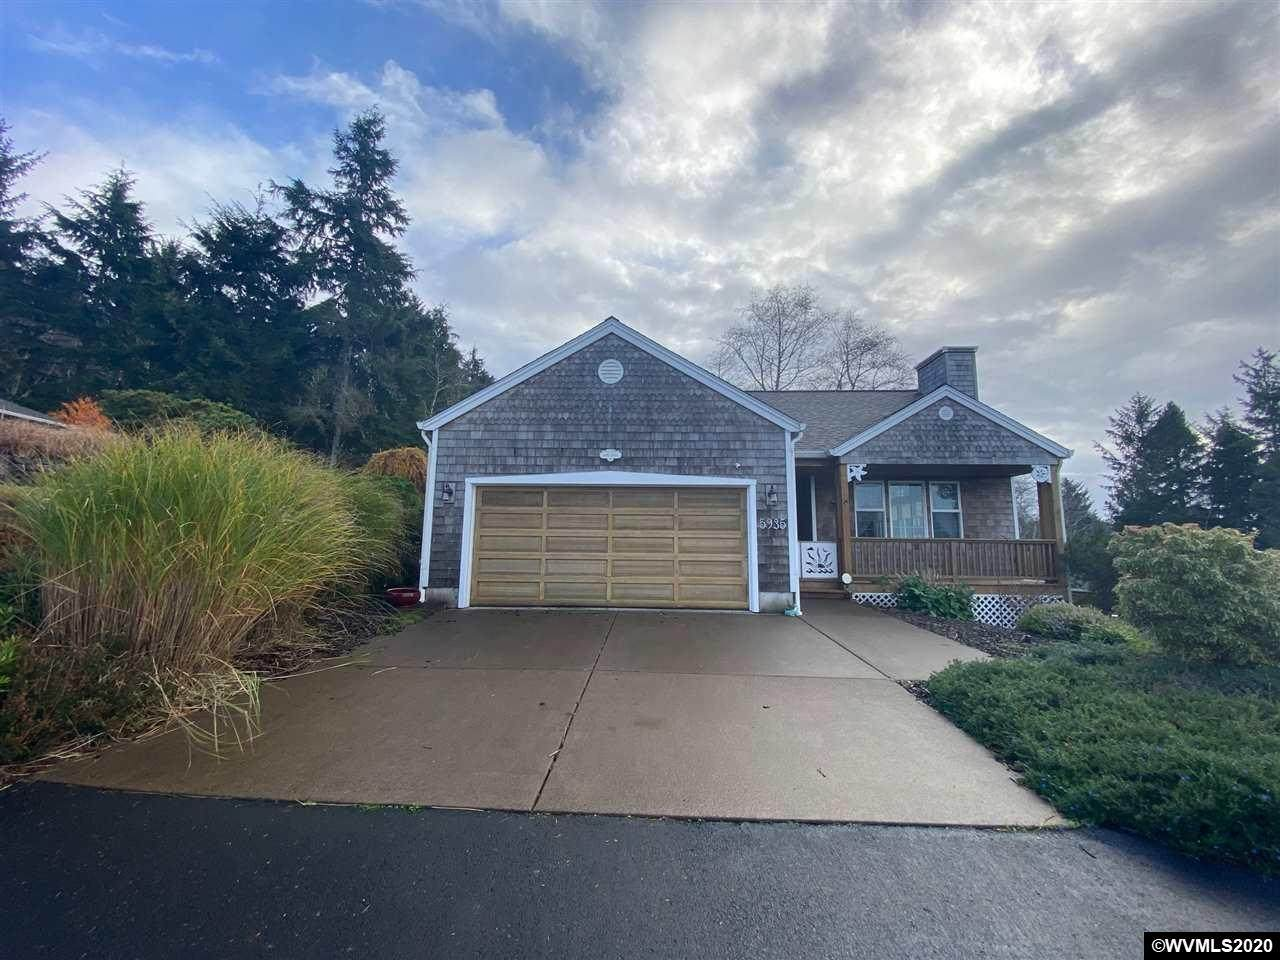 5935 Pacific Overlook Dr - Photo 1